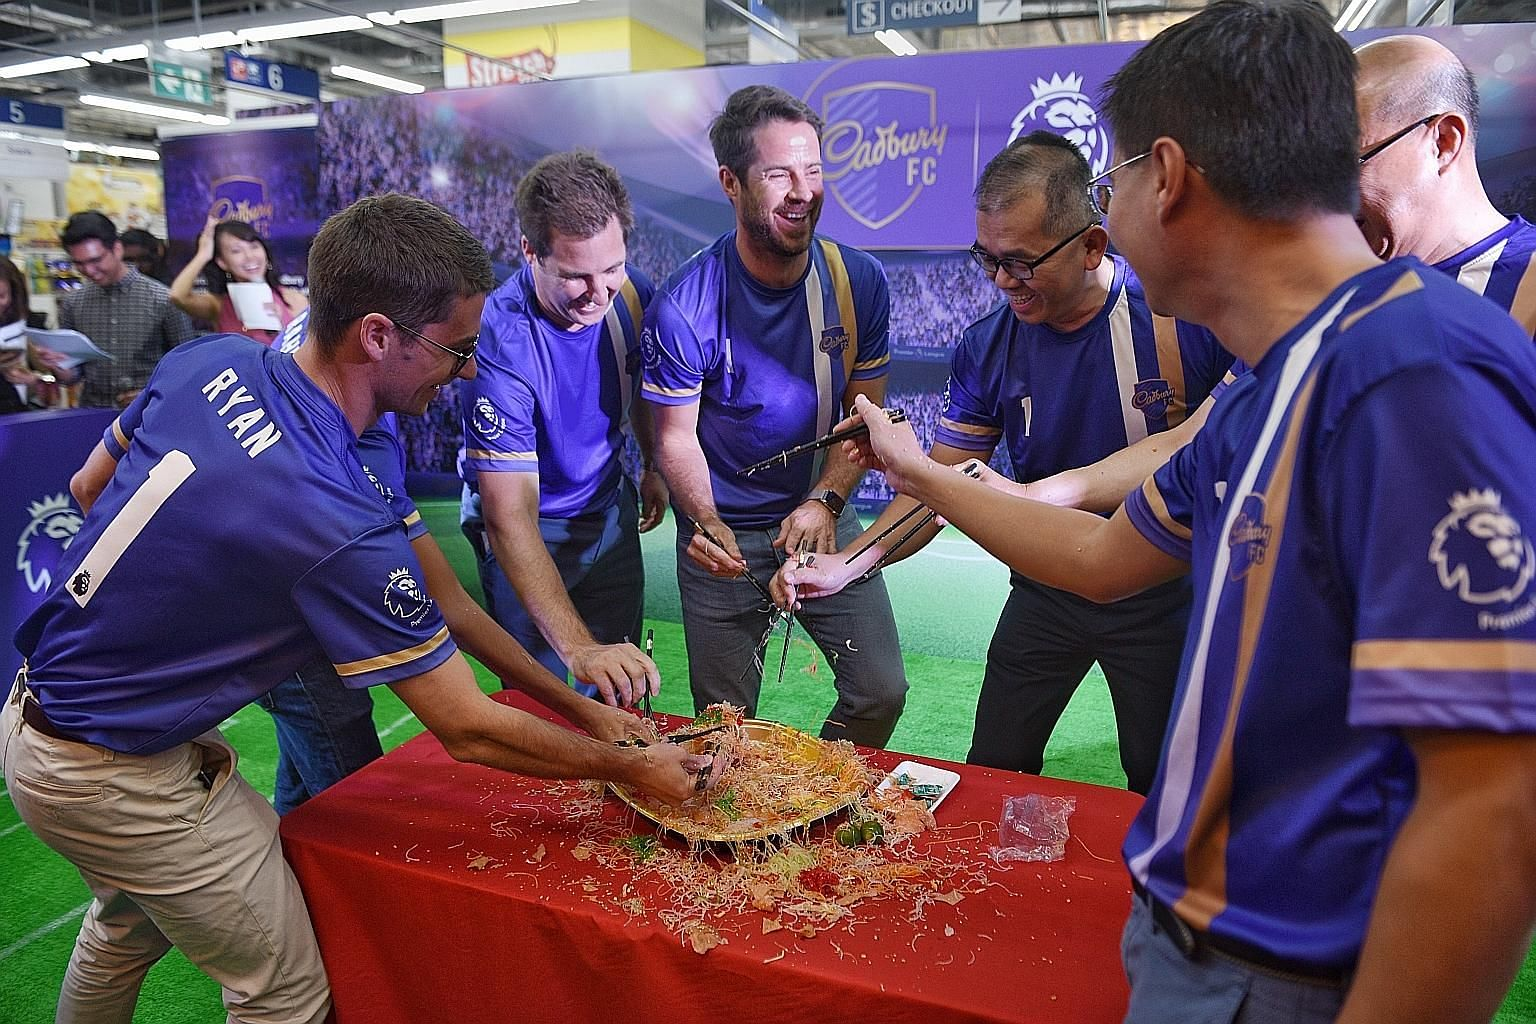 Former England footballer Jamie Redknapp (centre), in Singapore during the Chinese New Year, tossing yusheng during the traditional lohei session at a Cadbury event yesterday. ST PHOTO: KELLY HUI